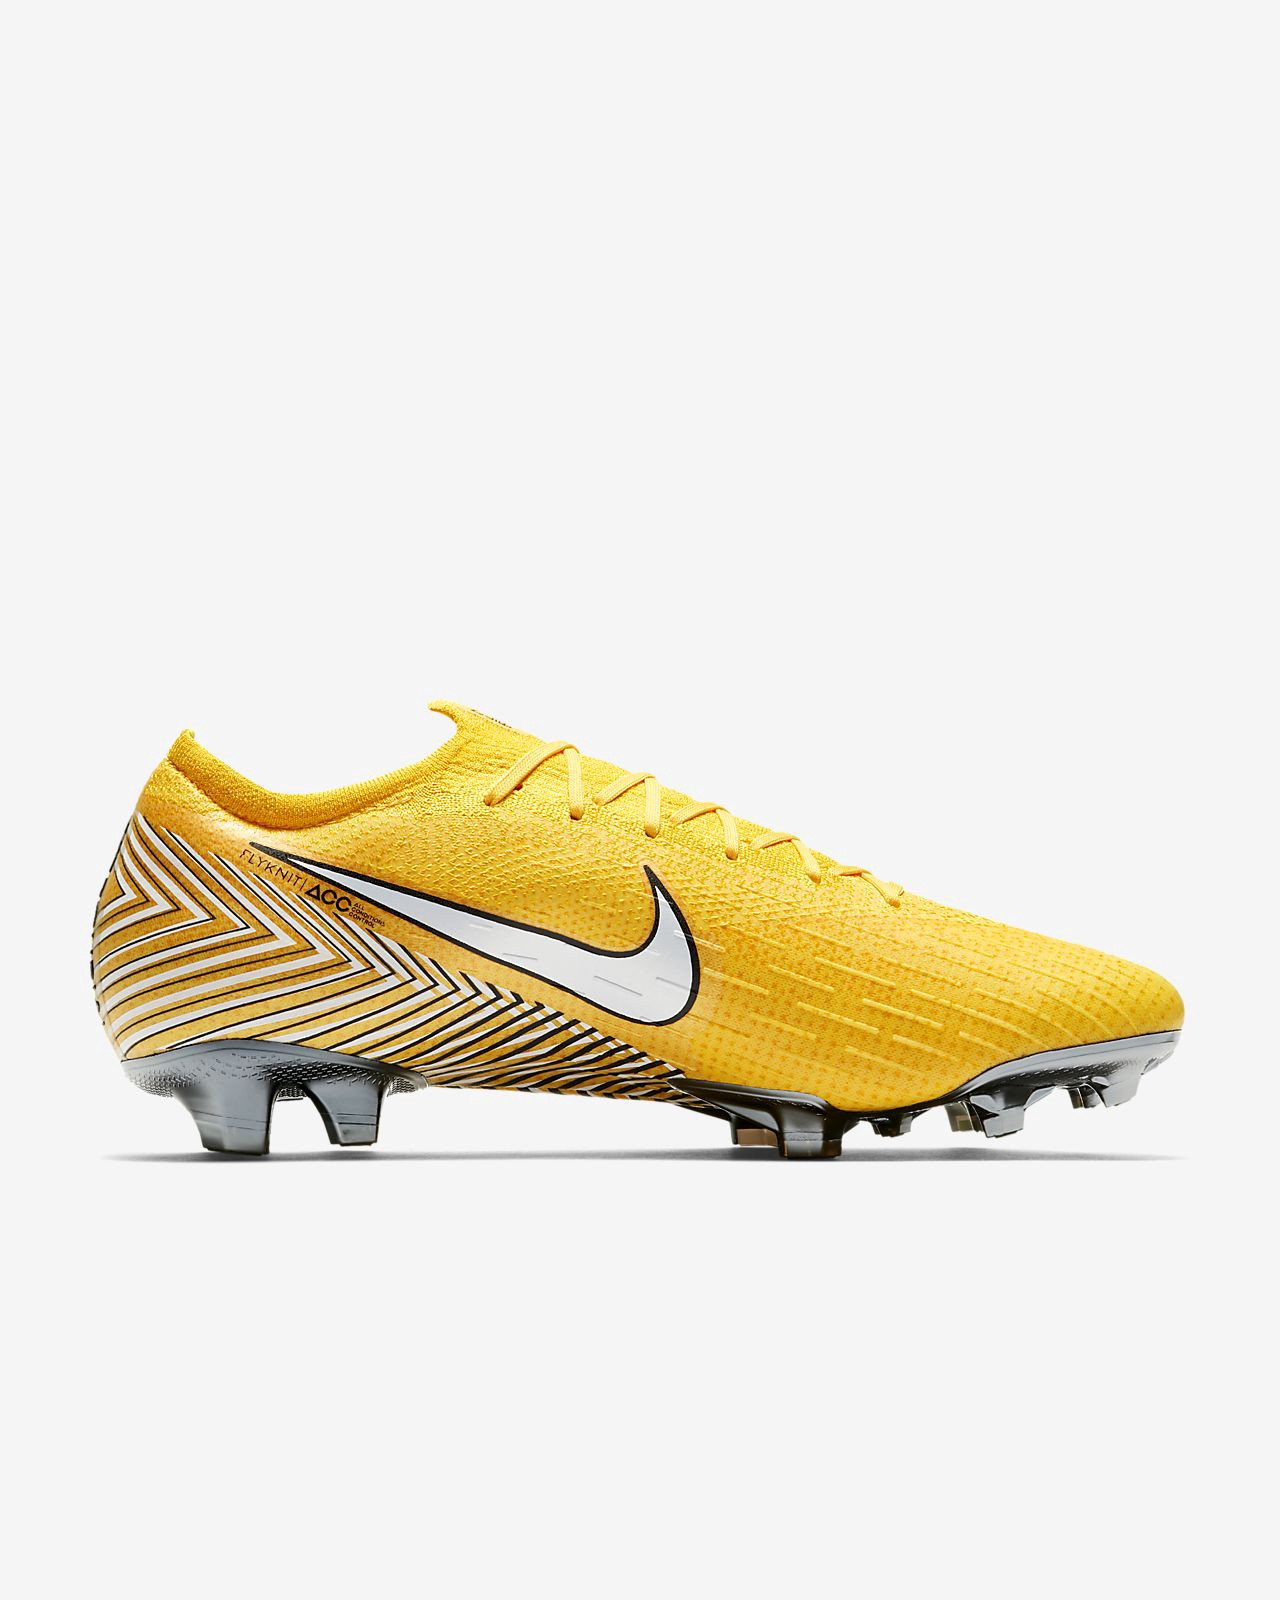 7d6cec8ff8eb Nike Mercurial Vapor 360 Elite Neymar Jr Fg Firm-Ground Soccer Cleat - M  11.5 / W 13